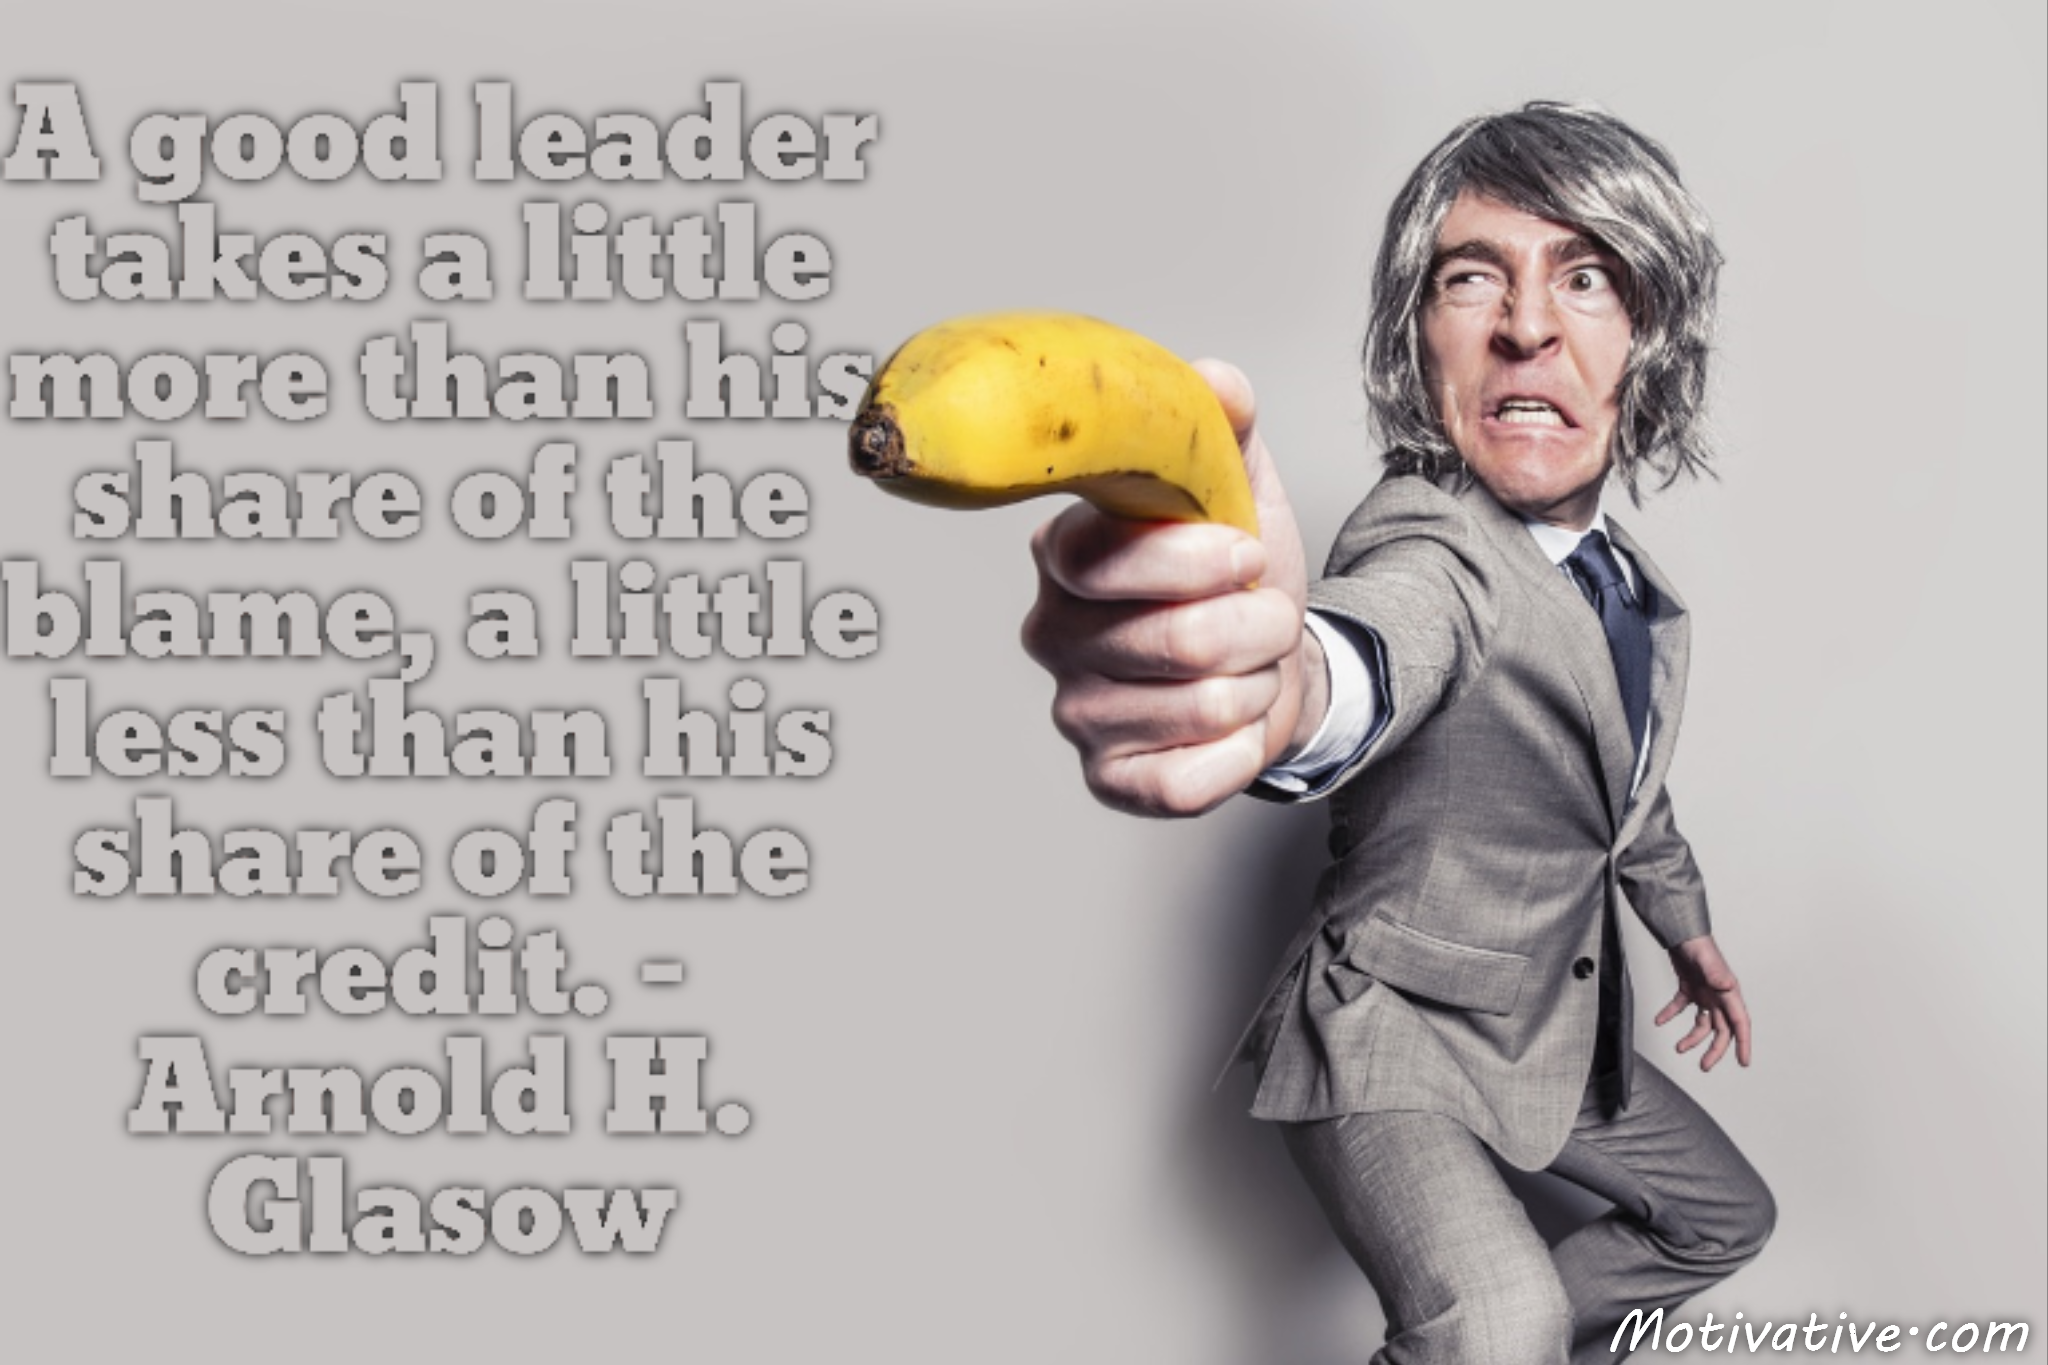 A good leader takes a little more than his share of the blame, a little less than his share of the credit. – Arnold H. Glasow